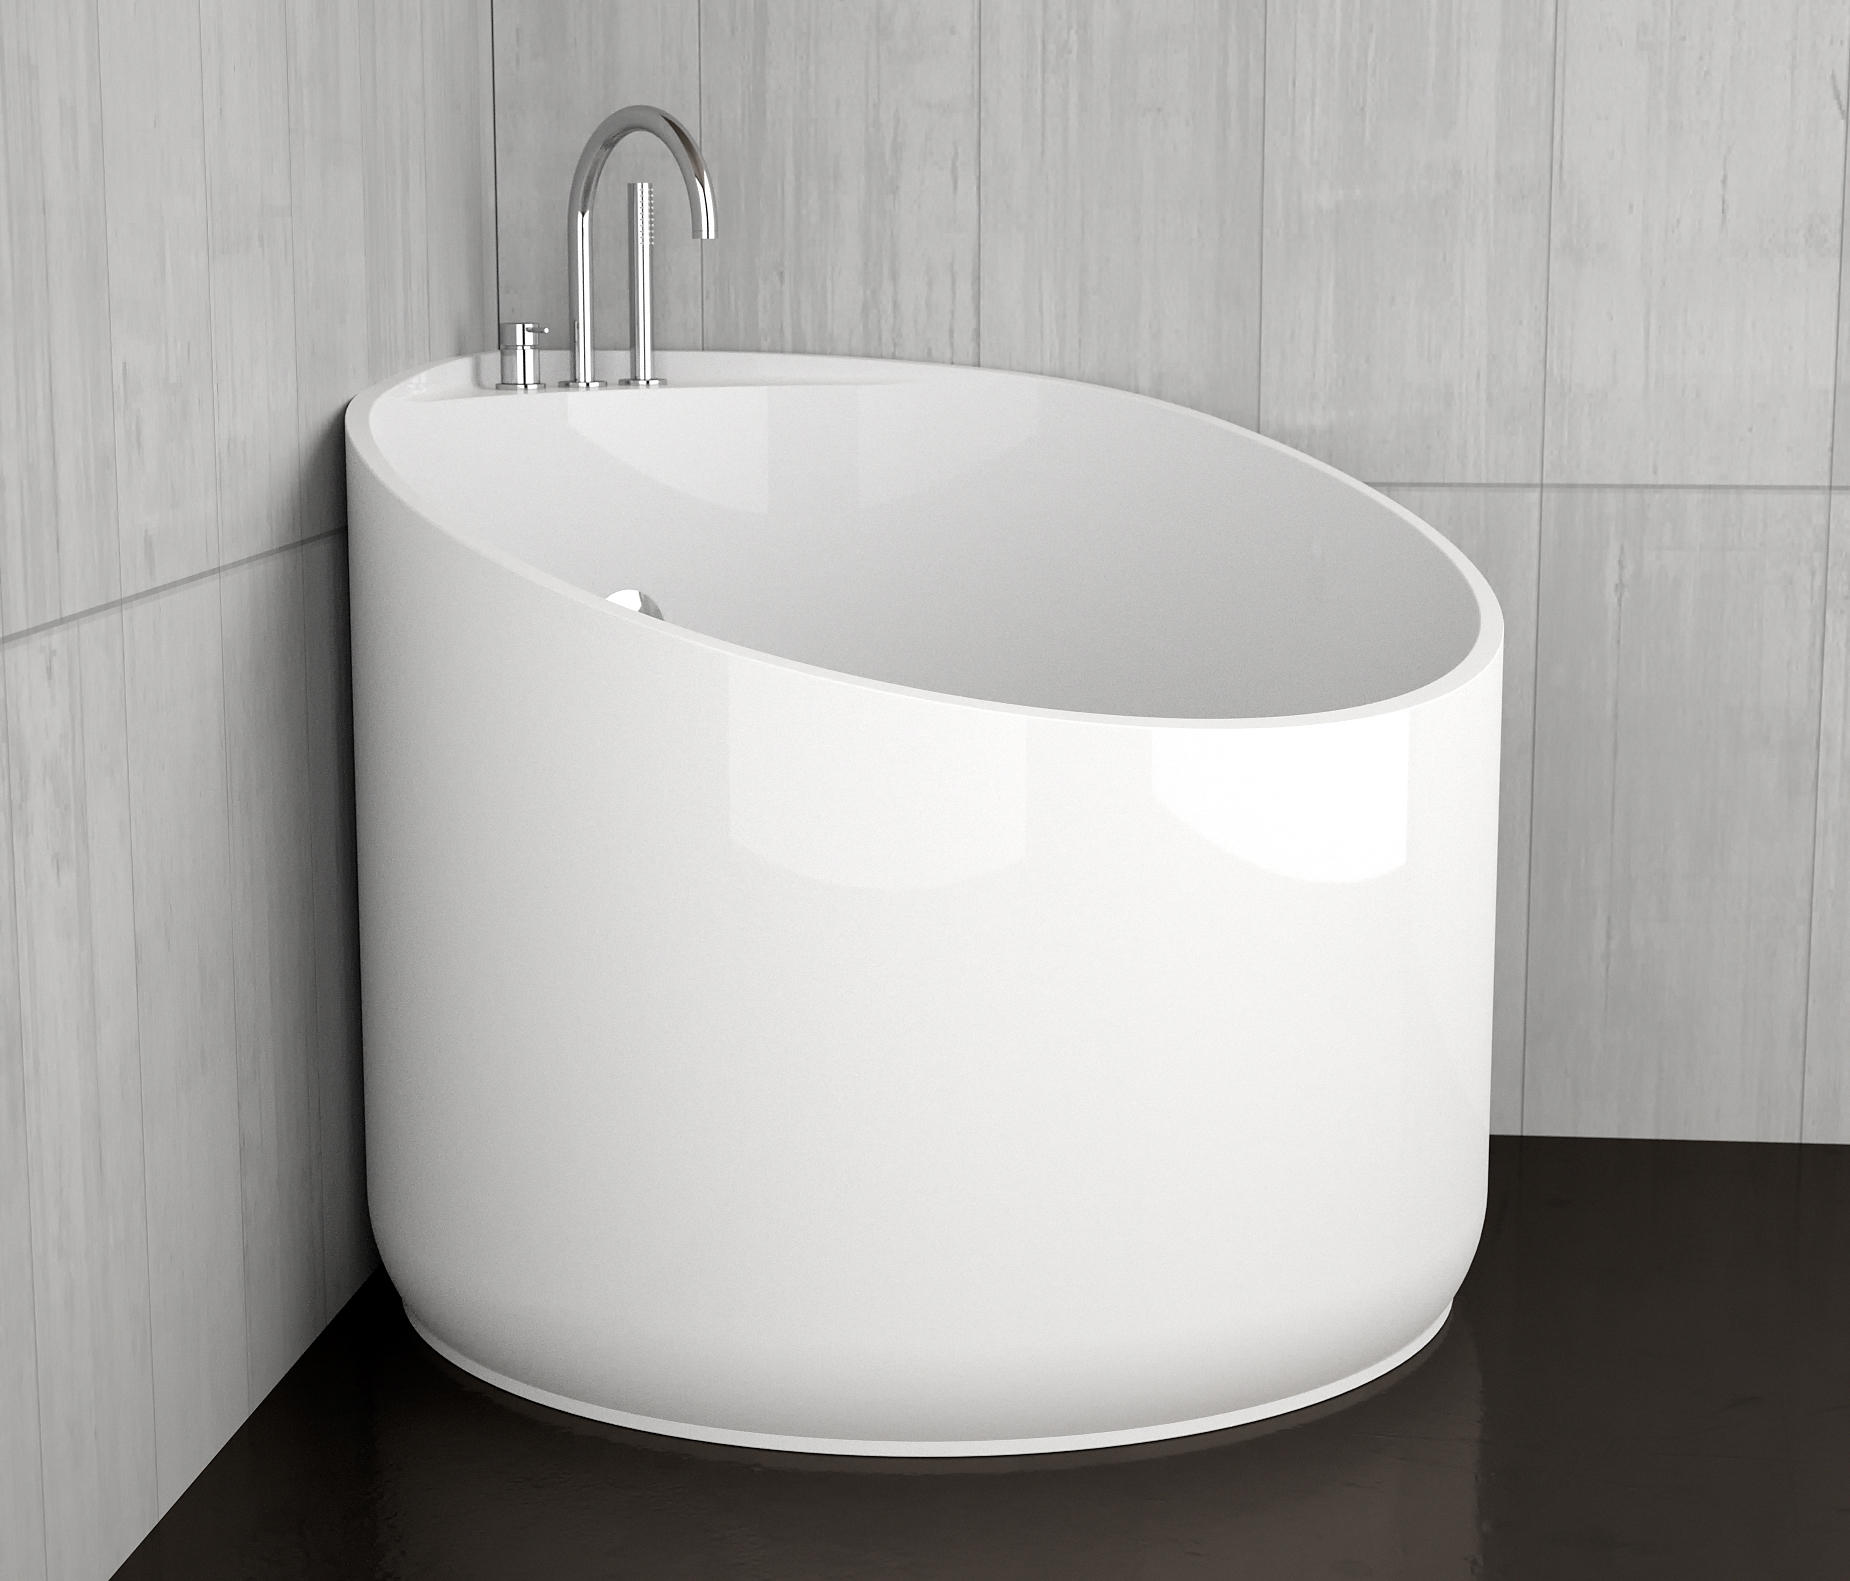 MINI - Free-standing baths from Glass Design | Architonic